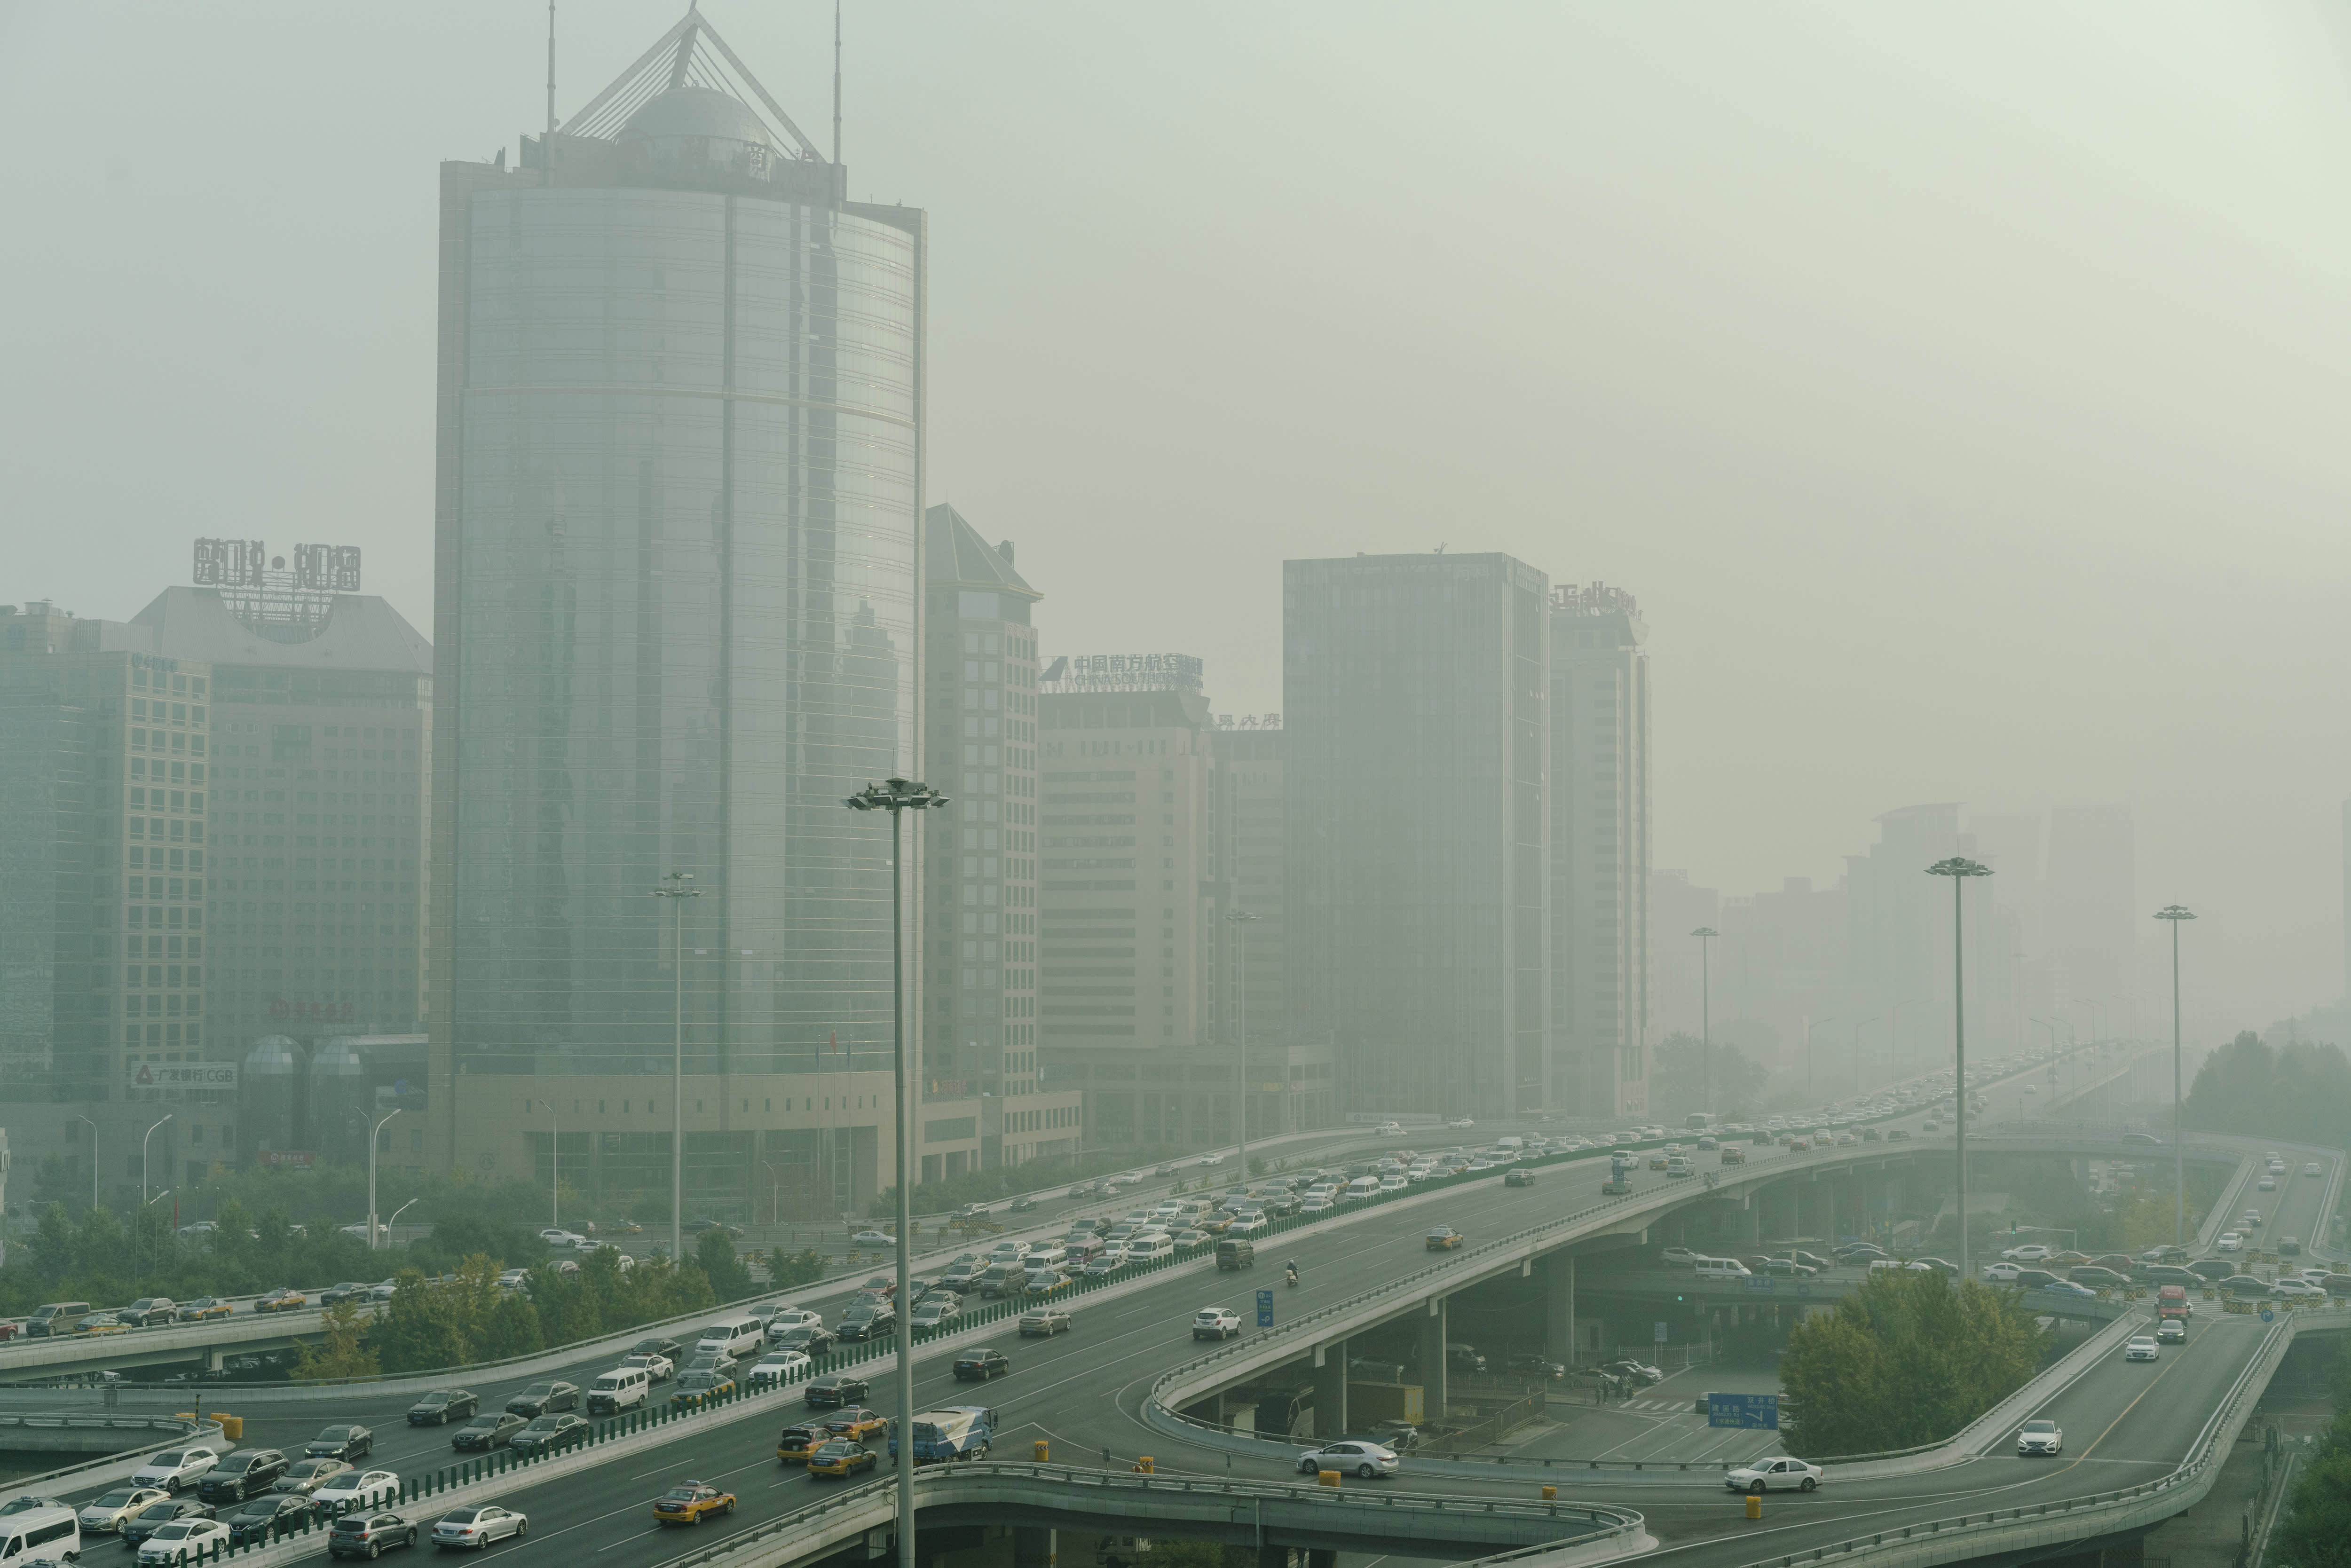 China's recent air pollution levels may be telling a story about the coronavirus impact on its economy